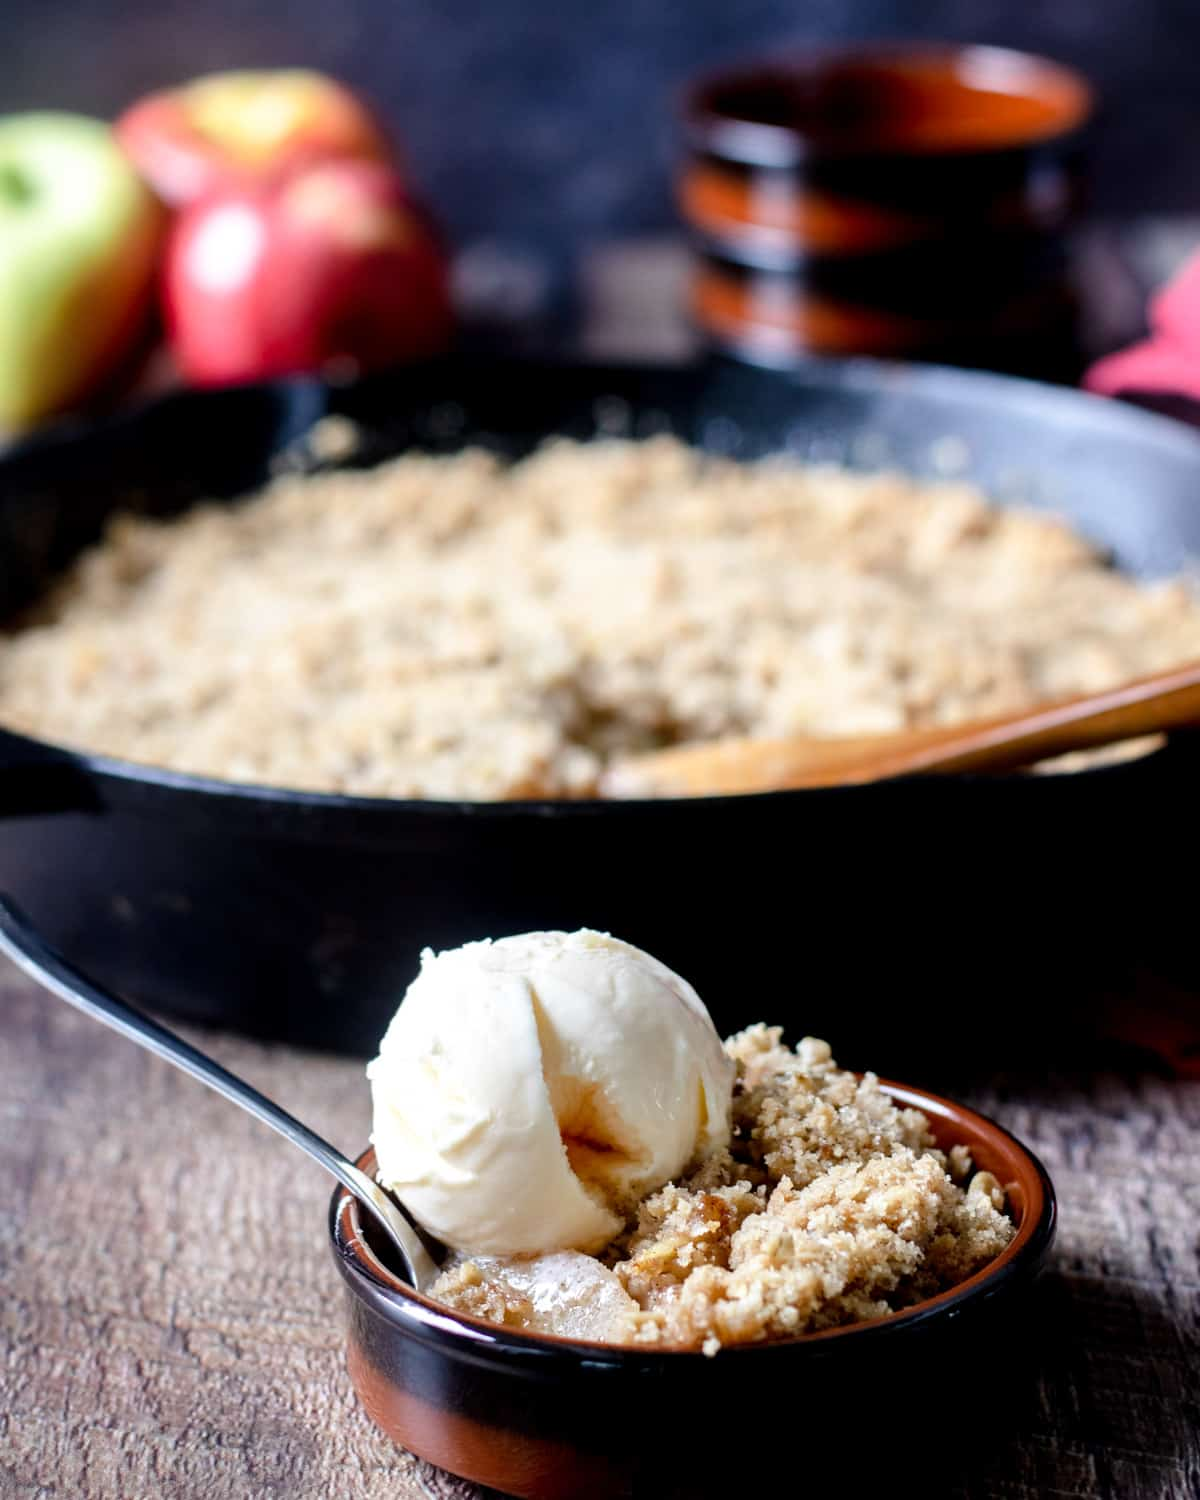 Ramekin of apple crisp topped with ice crema, and a skillet of apple crisp in the background.